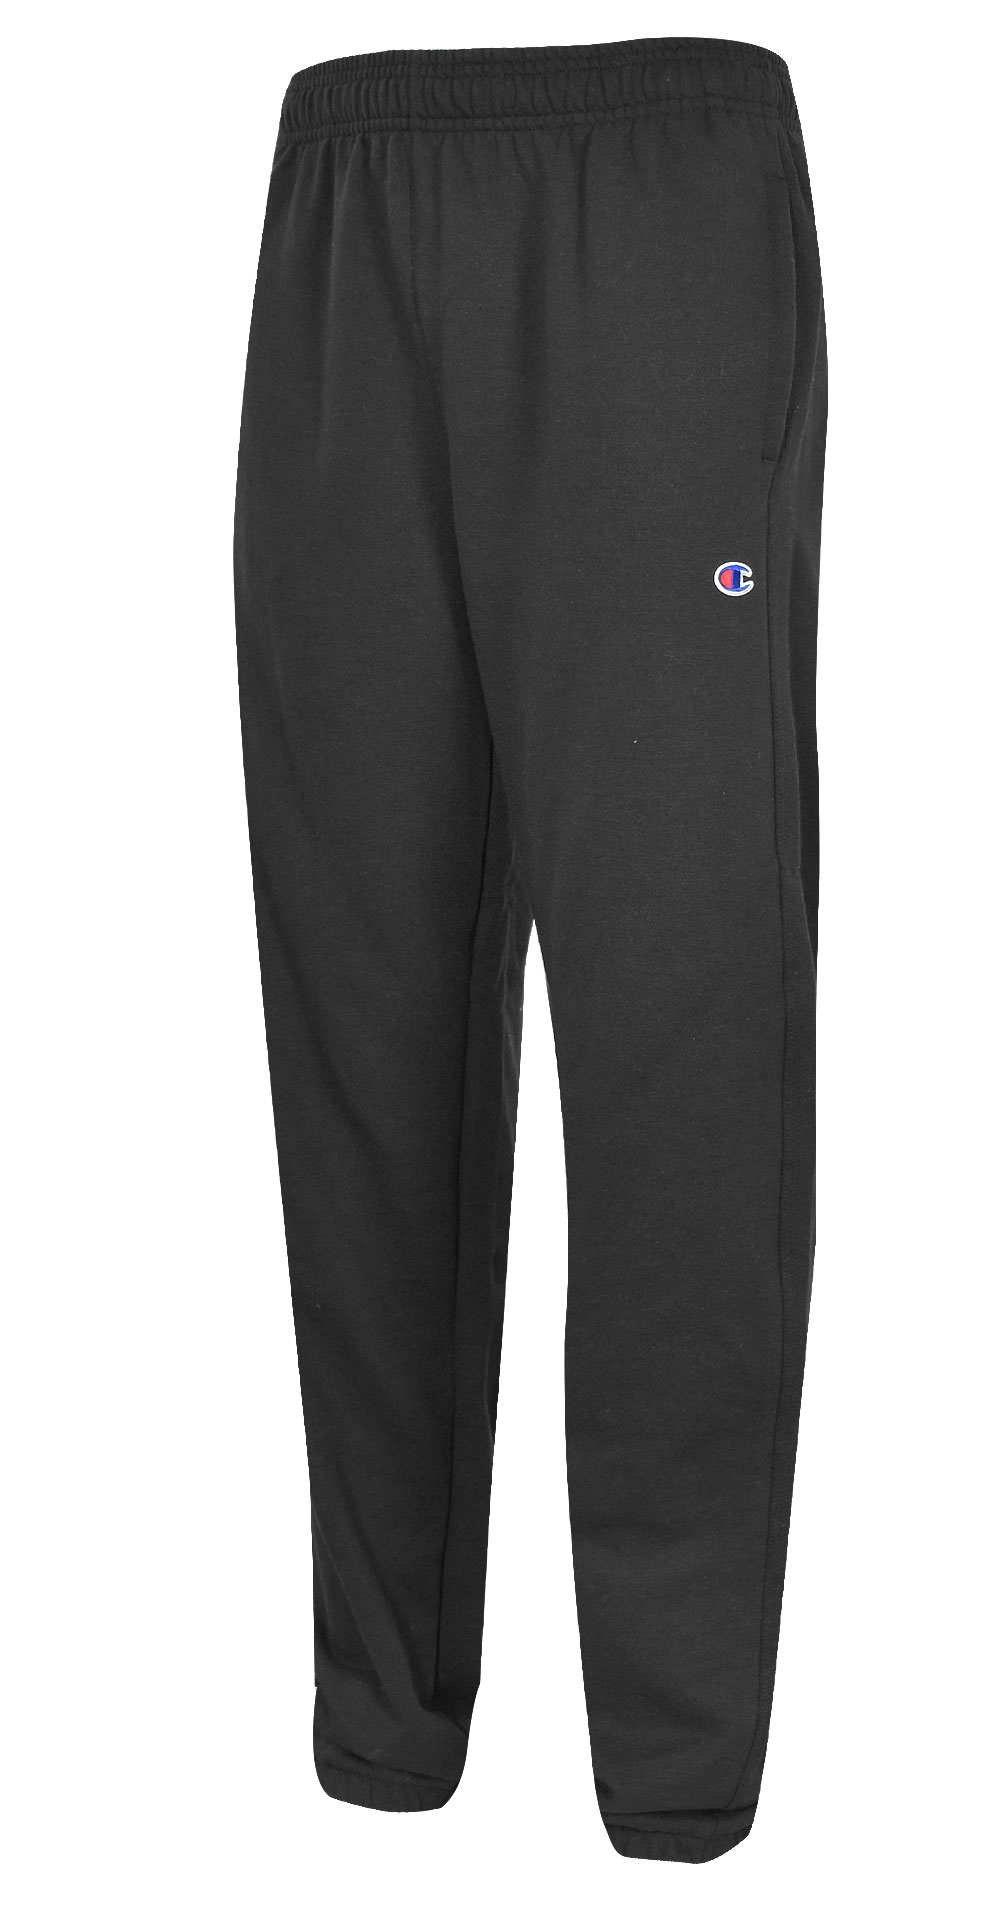 4b7efb30fd84f Adidas- Team Issue Fleece Pants | RockBottomGolf.com